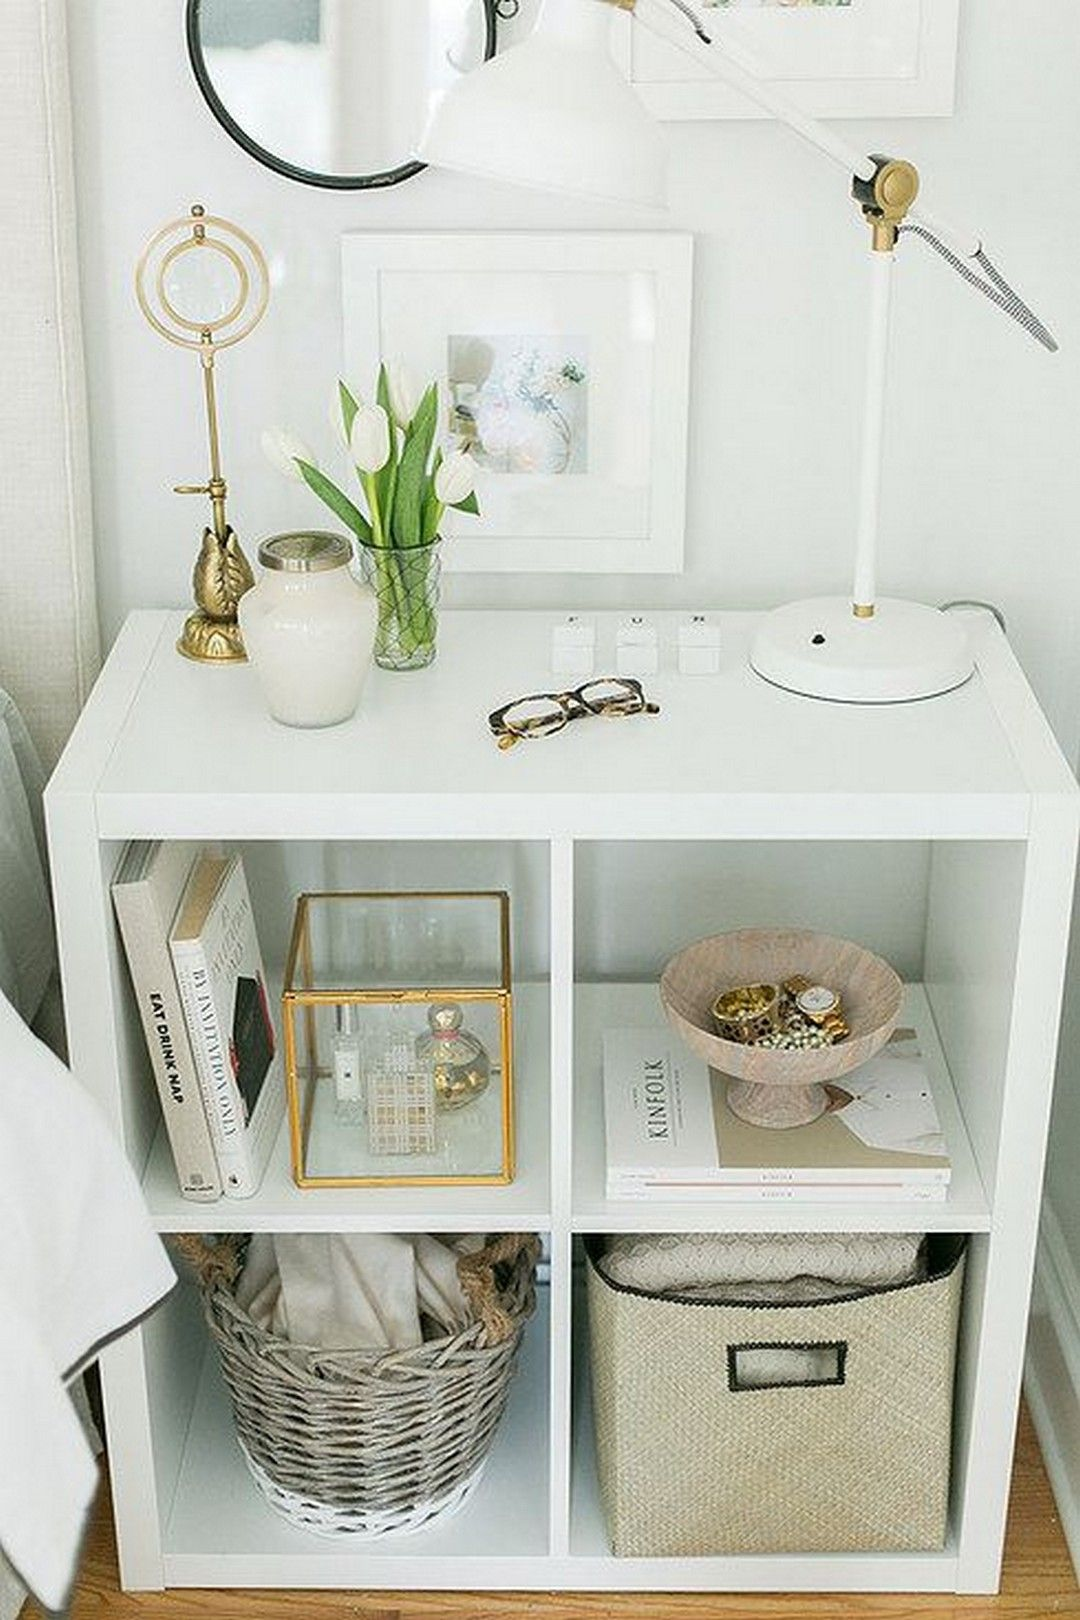 Simple and Cozy Small Apartment Decor | For the Home | First ... on decorating with a tall dresser, decorating room dresser, decorating console table, decorating dresser top, decorating dining room, bed dresser, decorating bathroom vanity, decorating dining table, decorating dresser drawers, decorating buffet table, decorating coffee tables,